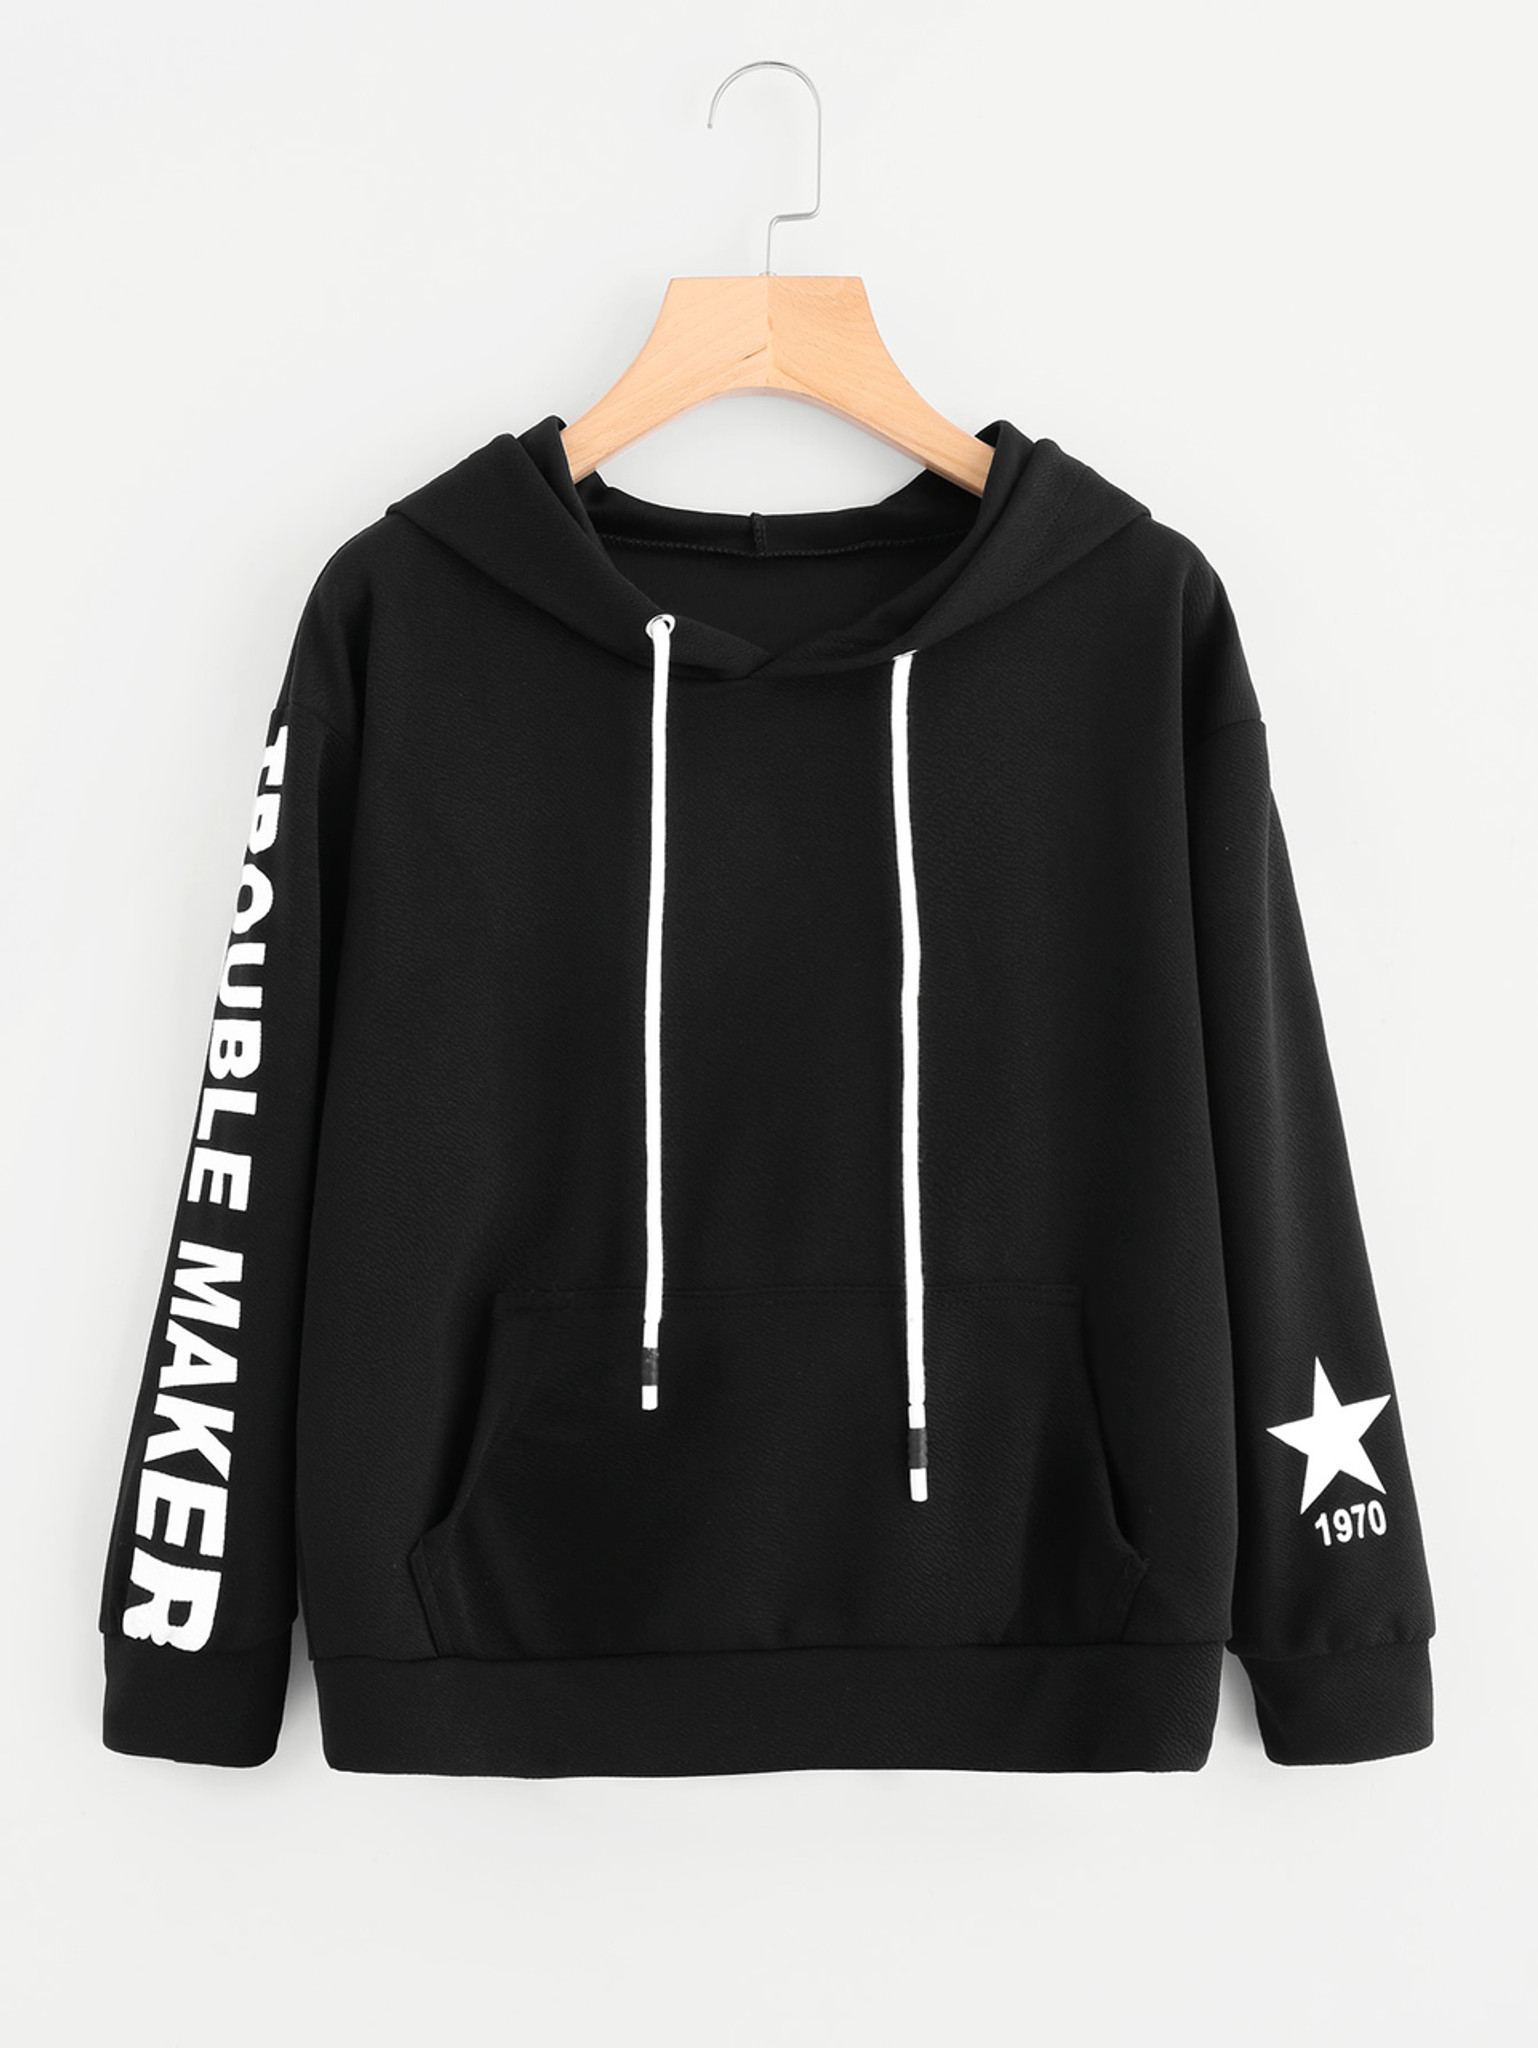 Fifth Avenue Trouble Maker Sleeve Print Hoodie - Black